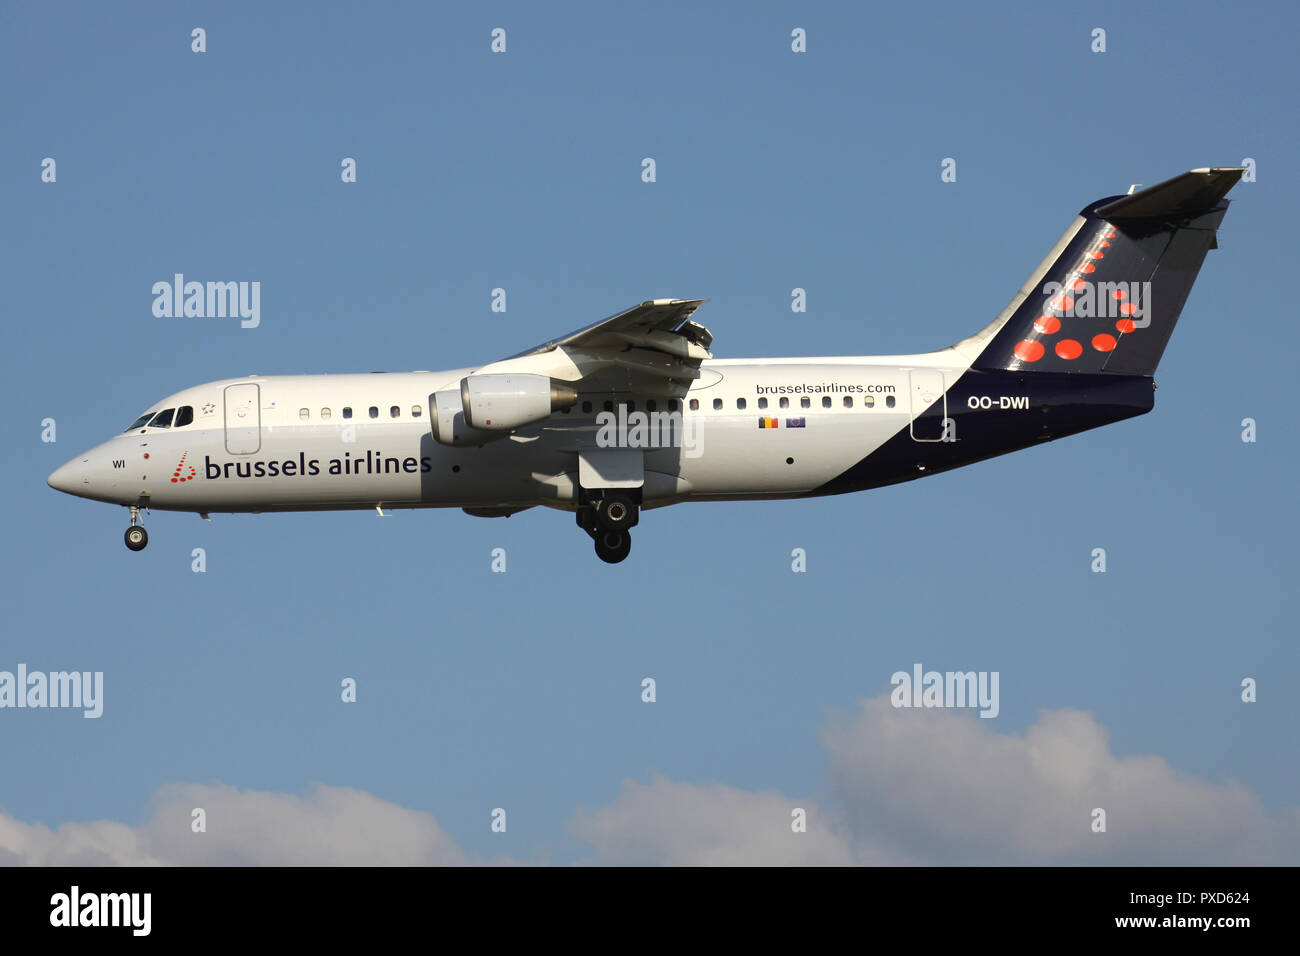 Belgian Brussels Airlines Avro RJ100 with registration OO-DWI on short final for runway 01 of Brussels Airport. - Stock Image